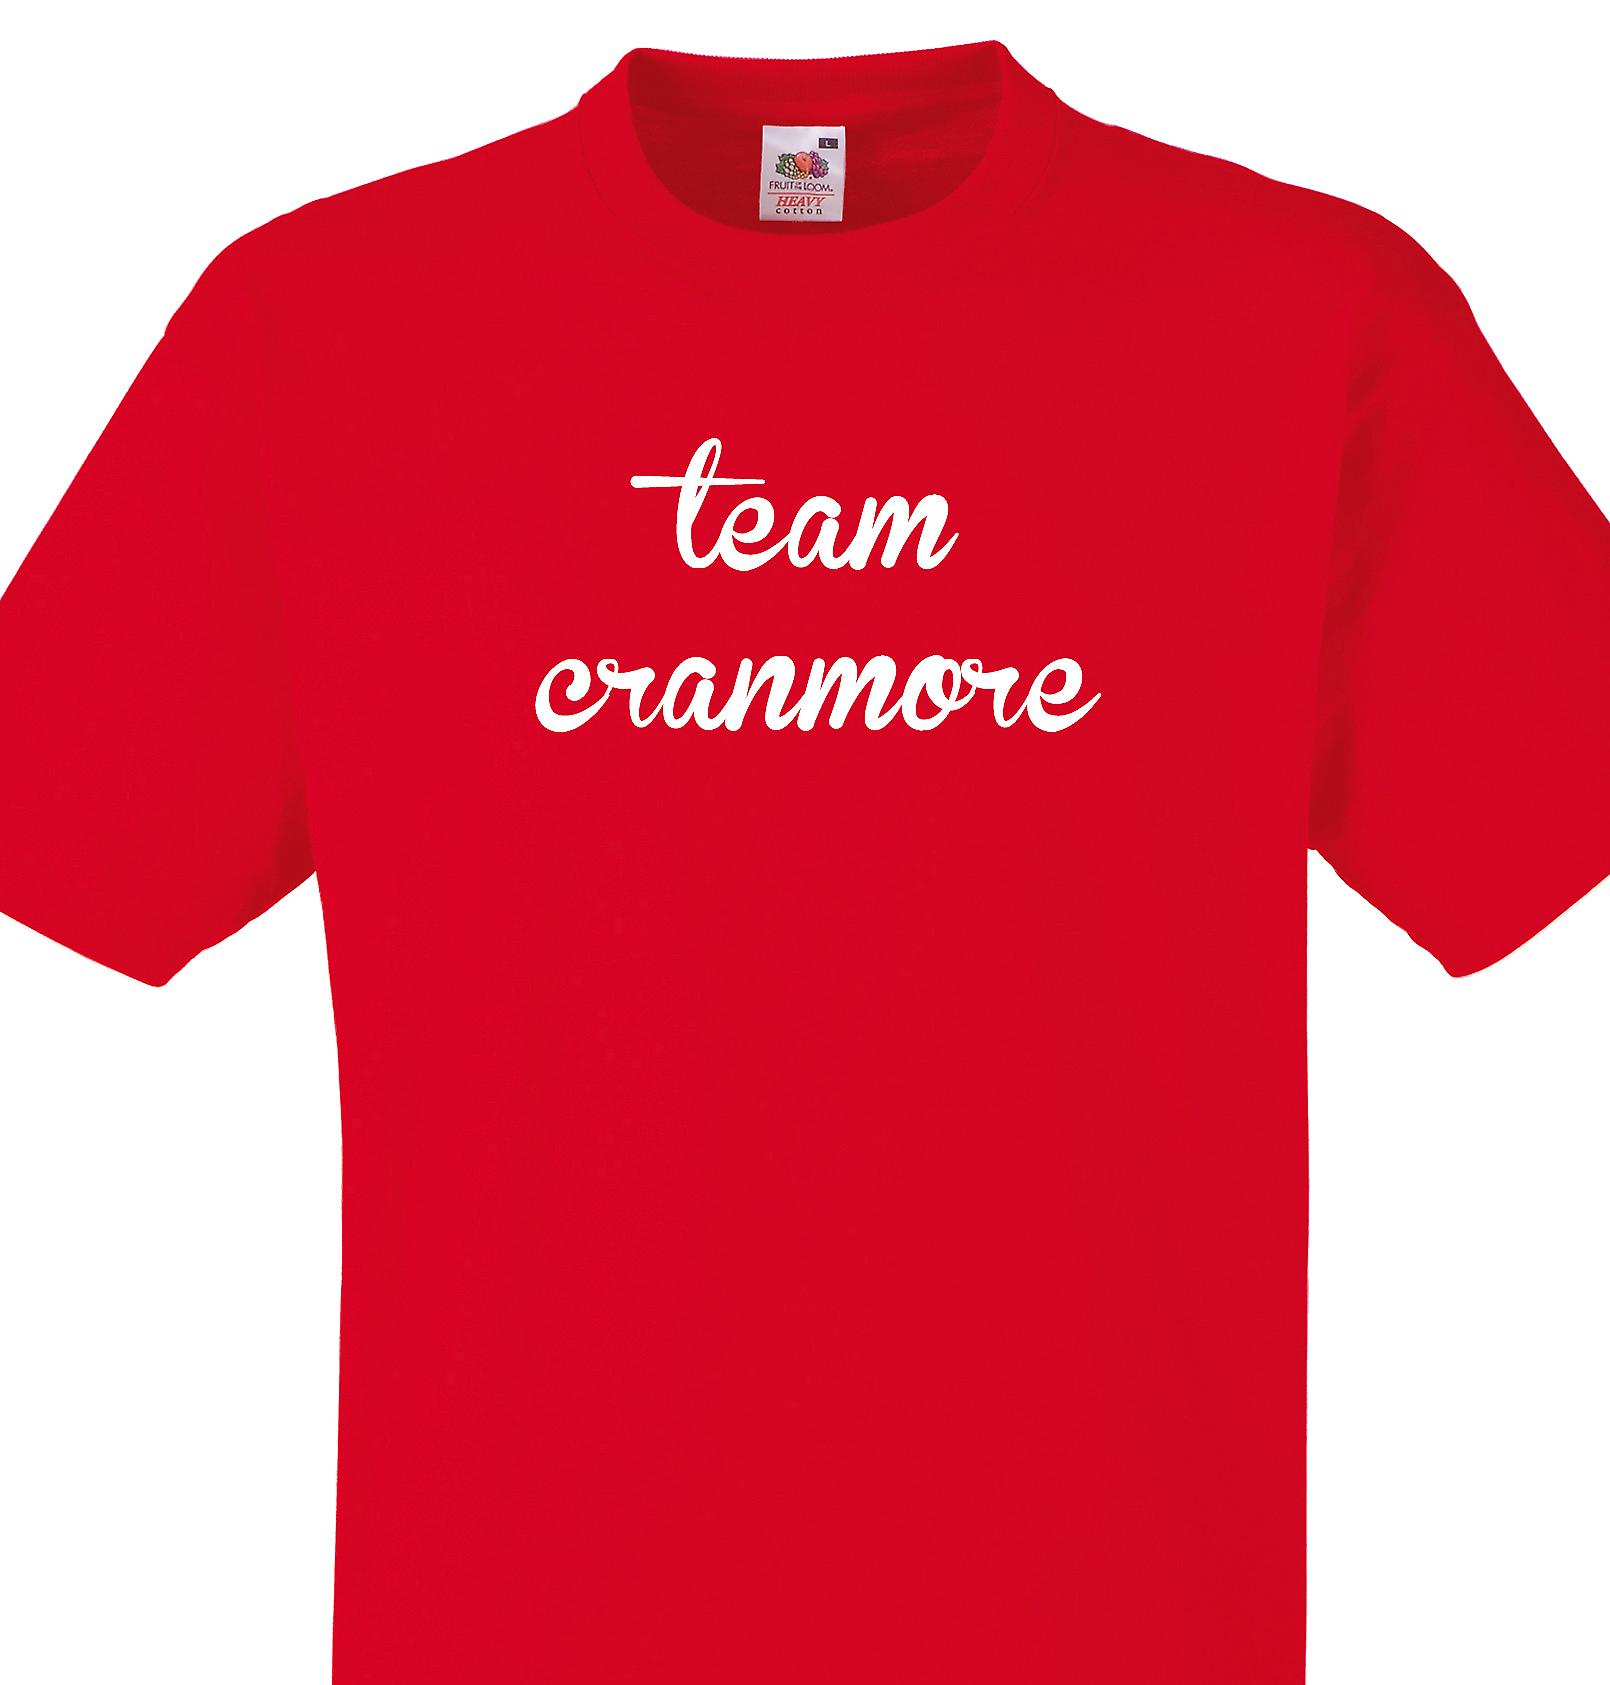 Team Cranmore Red T shirt